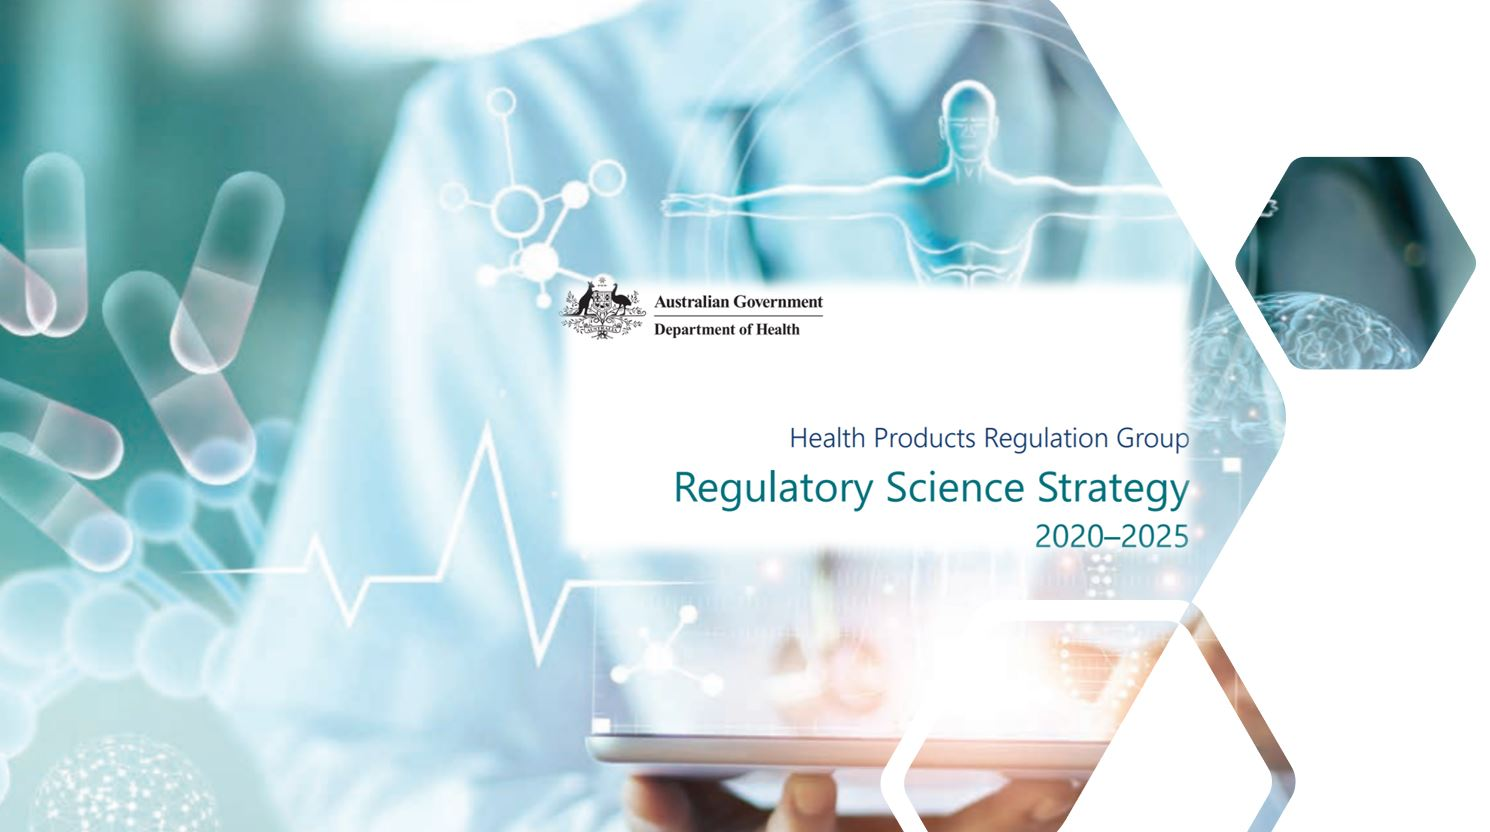 Pharma Medical News - TGA reveals new regulatory science strategy 2020-2025